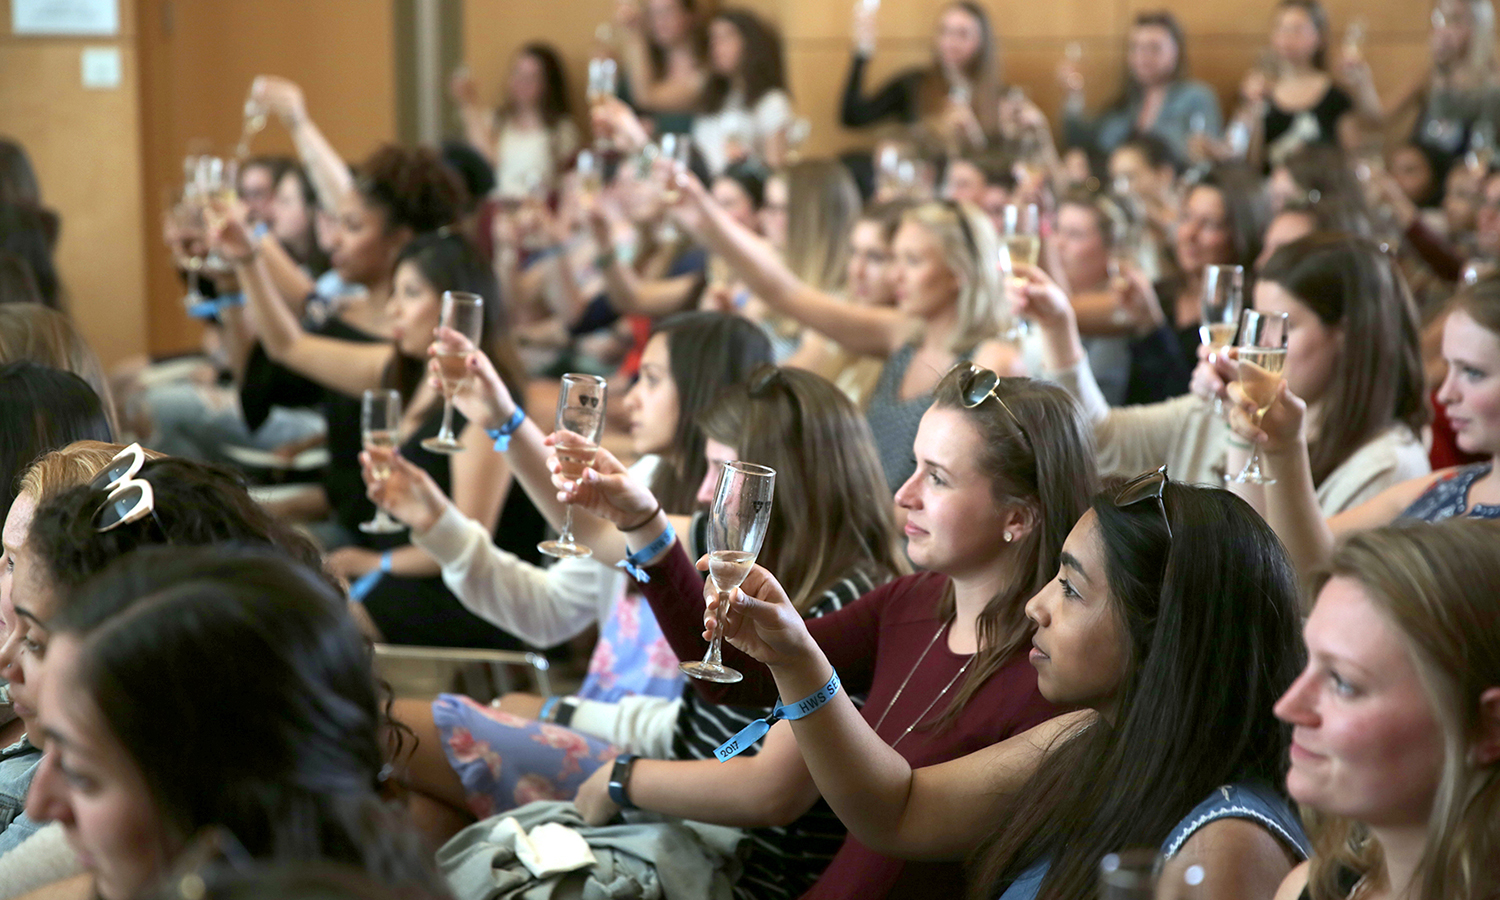 William Smith seniors raise their glasses for a toast during the William Smith Senior Welcome toast in the Gearan Center for the Performing Arts.